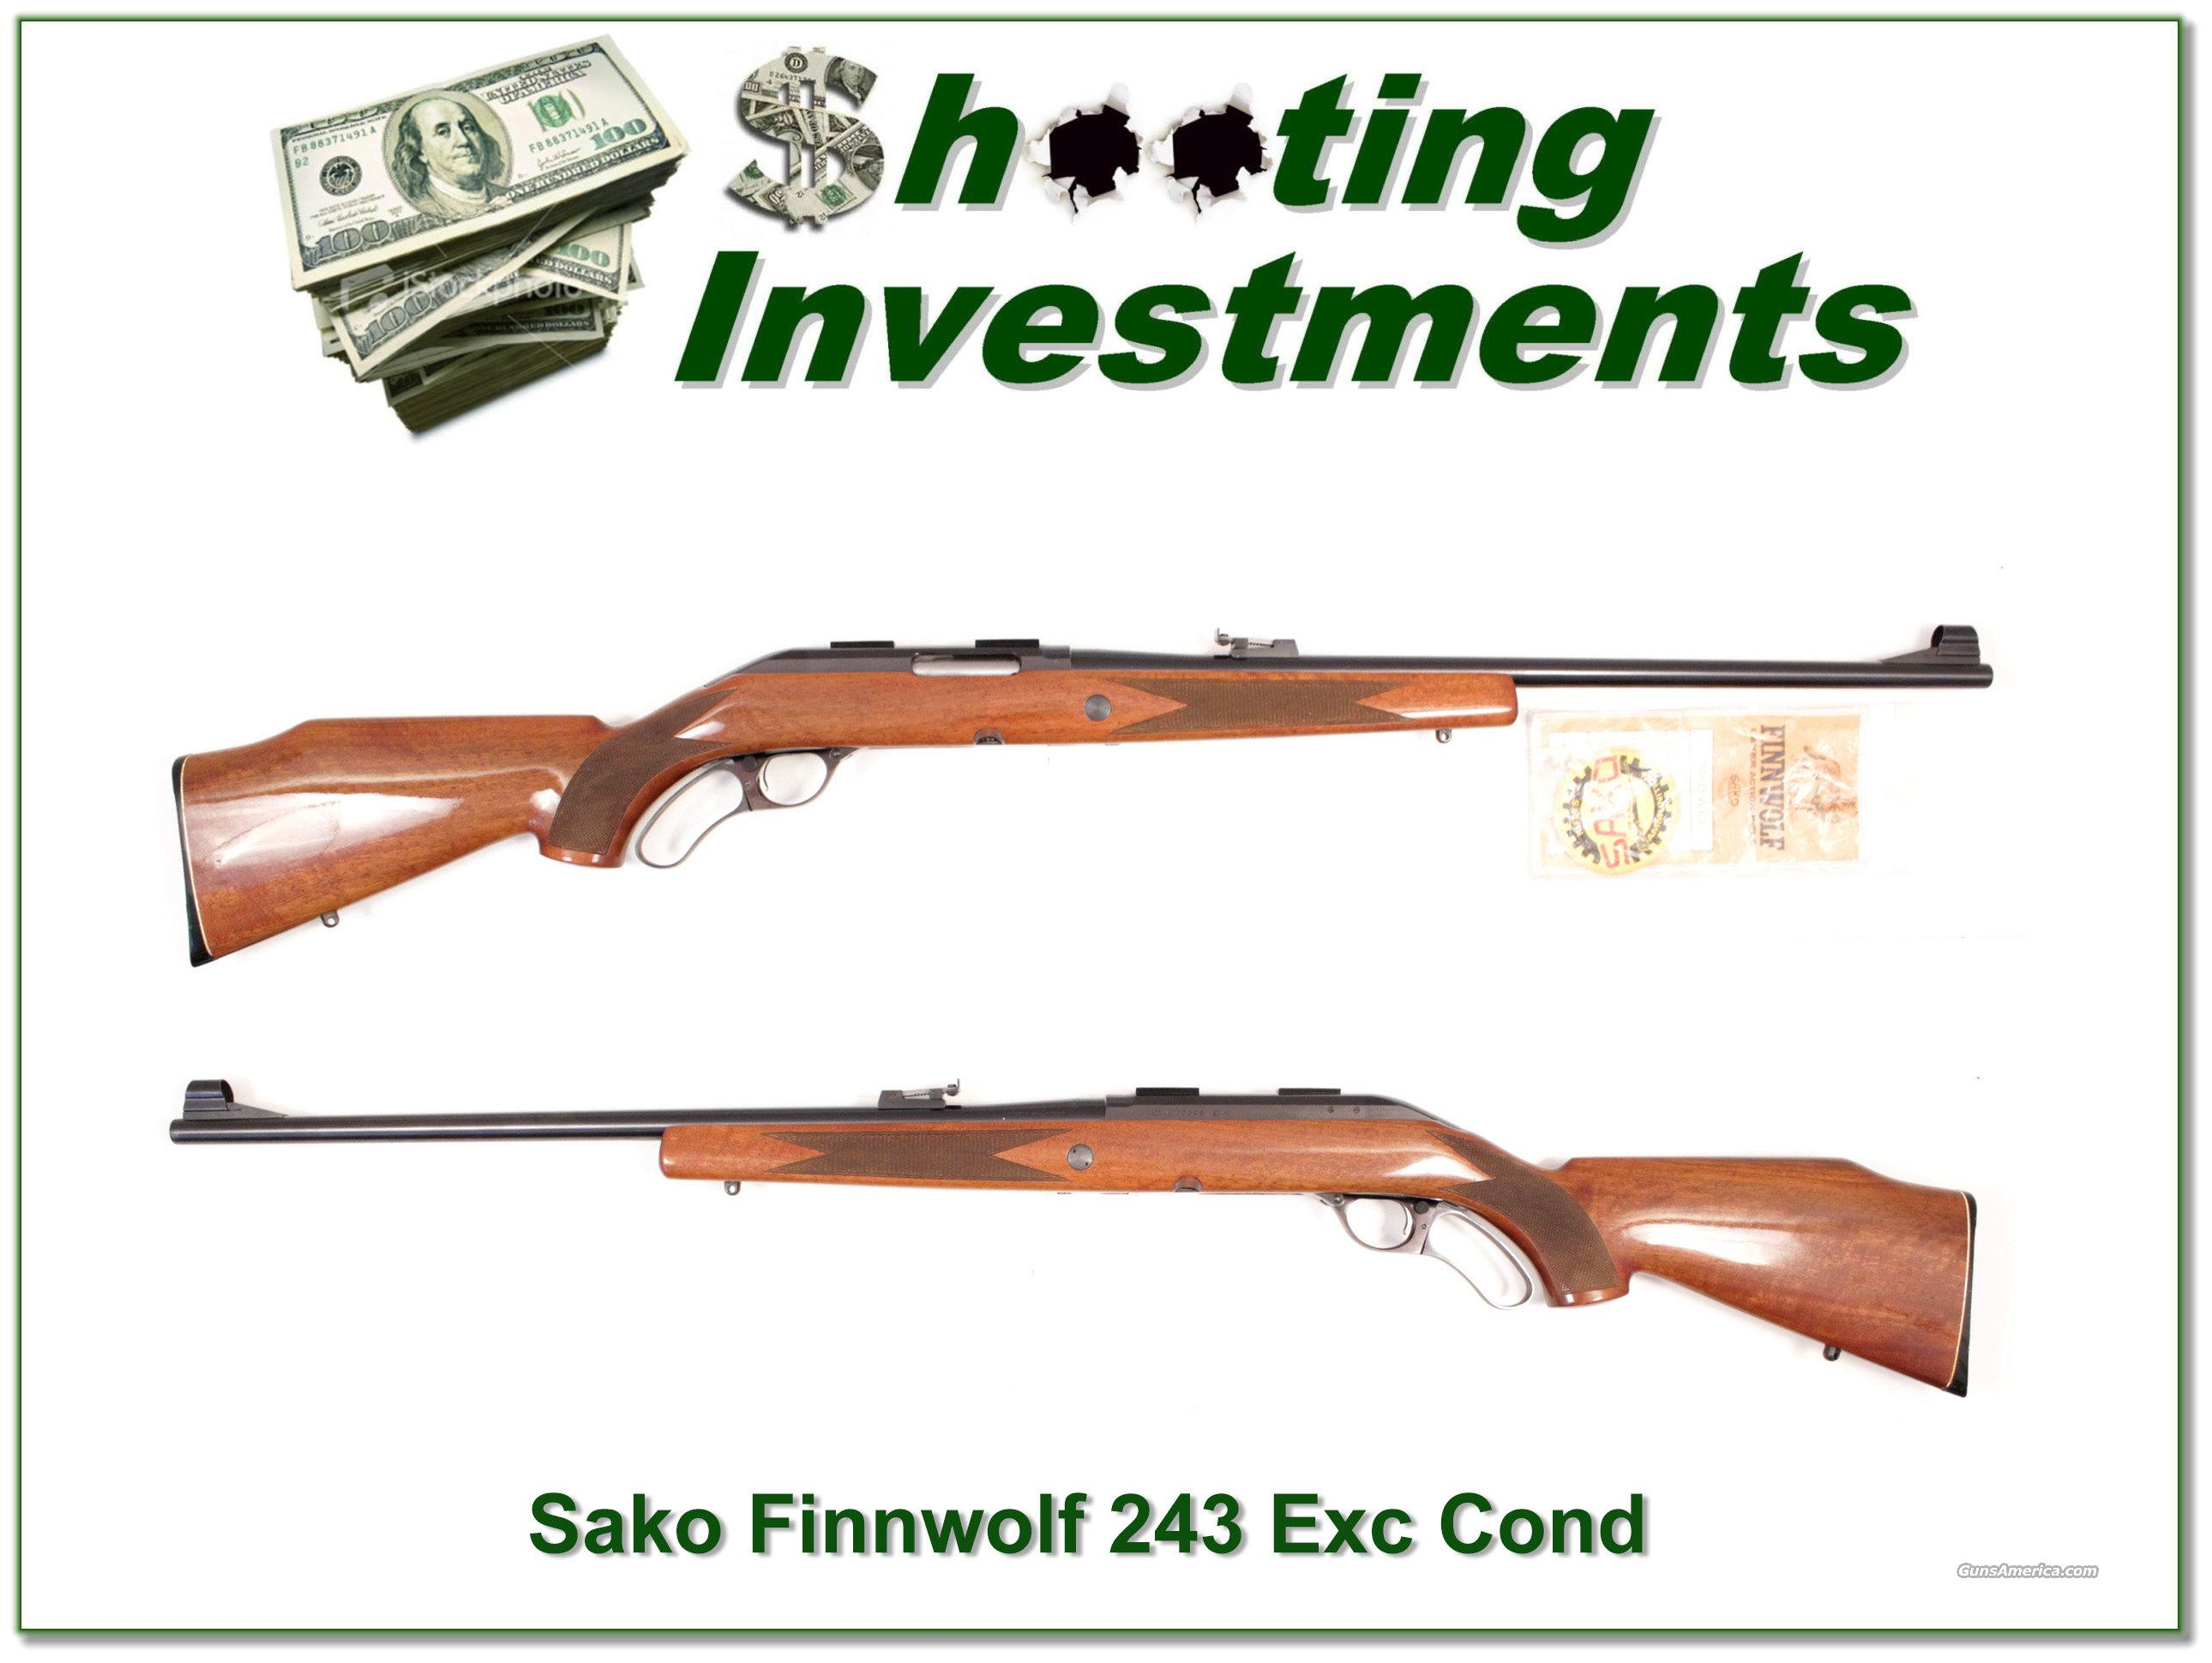 Sako Finnwolf rare 243 near new!  Guns > Rifles > Sako Rifles > Other Bolt Action